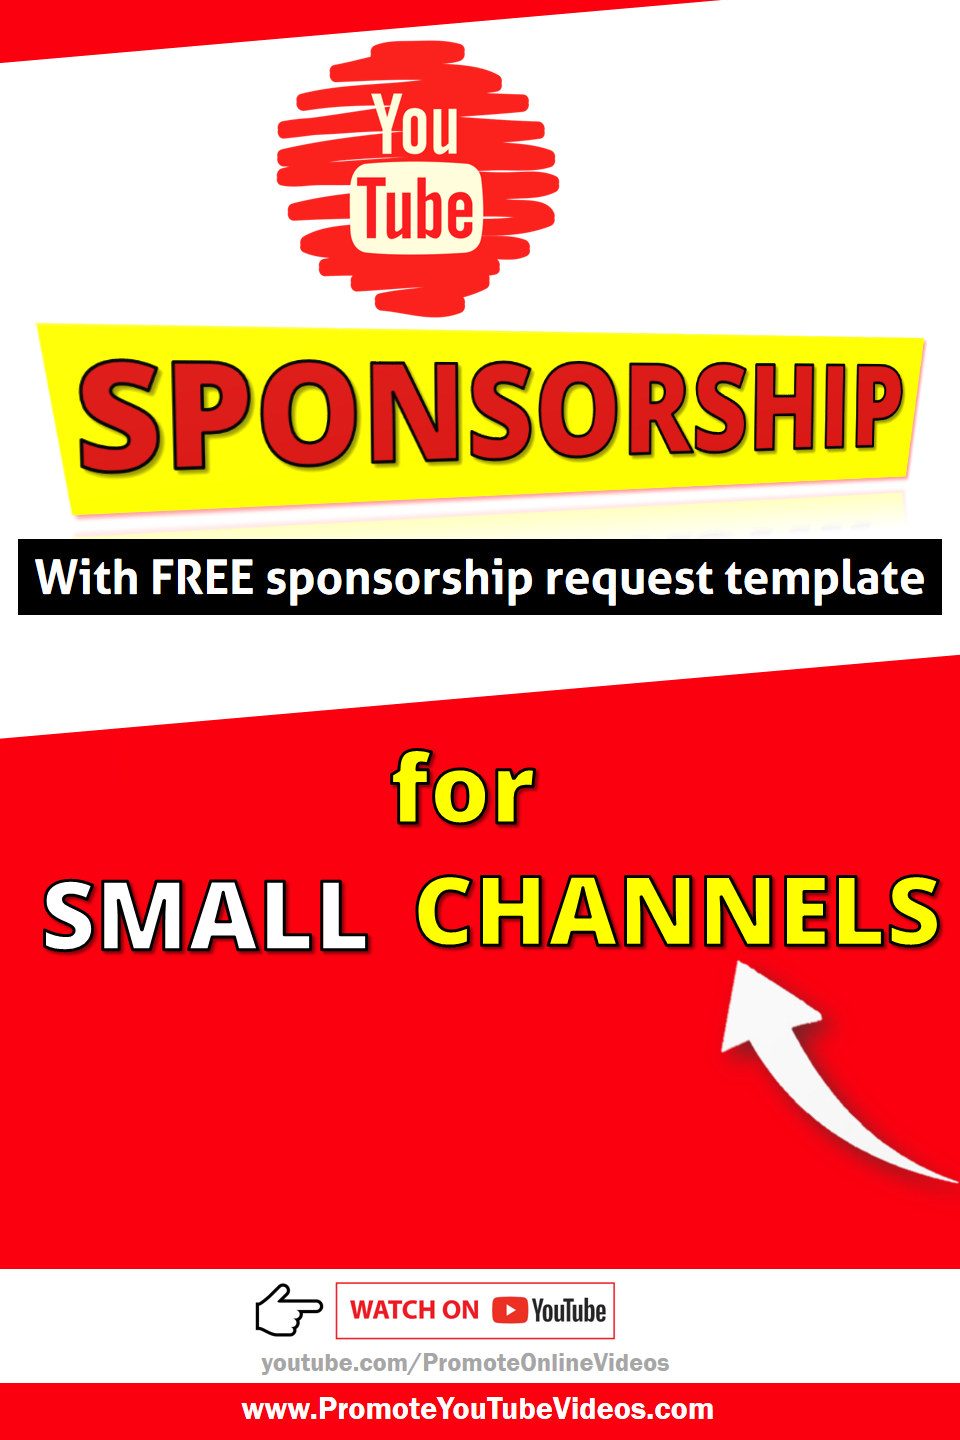 how to get sponsored on YouTube for small channels. Are